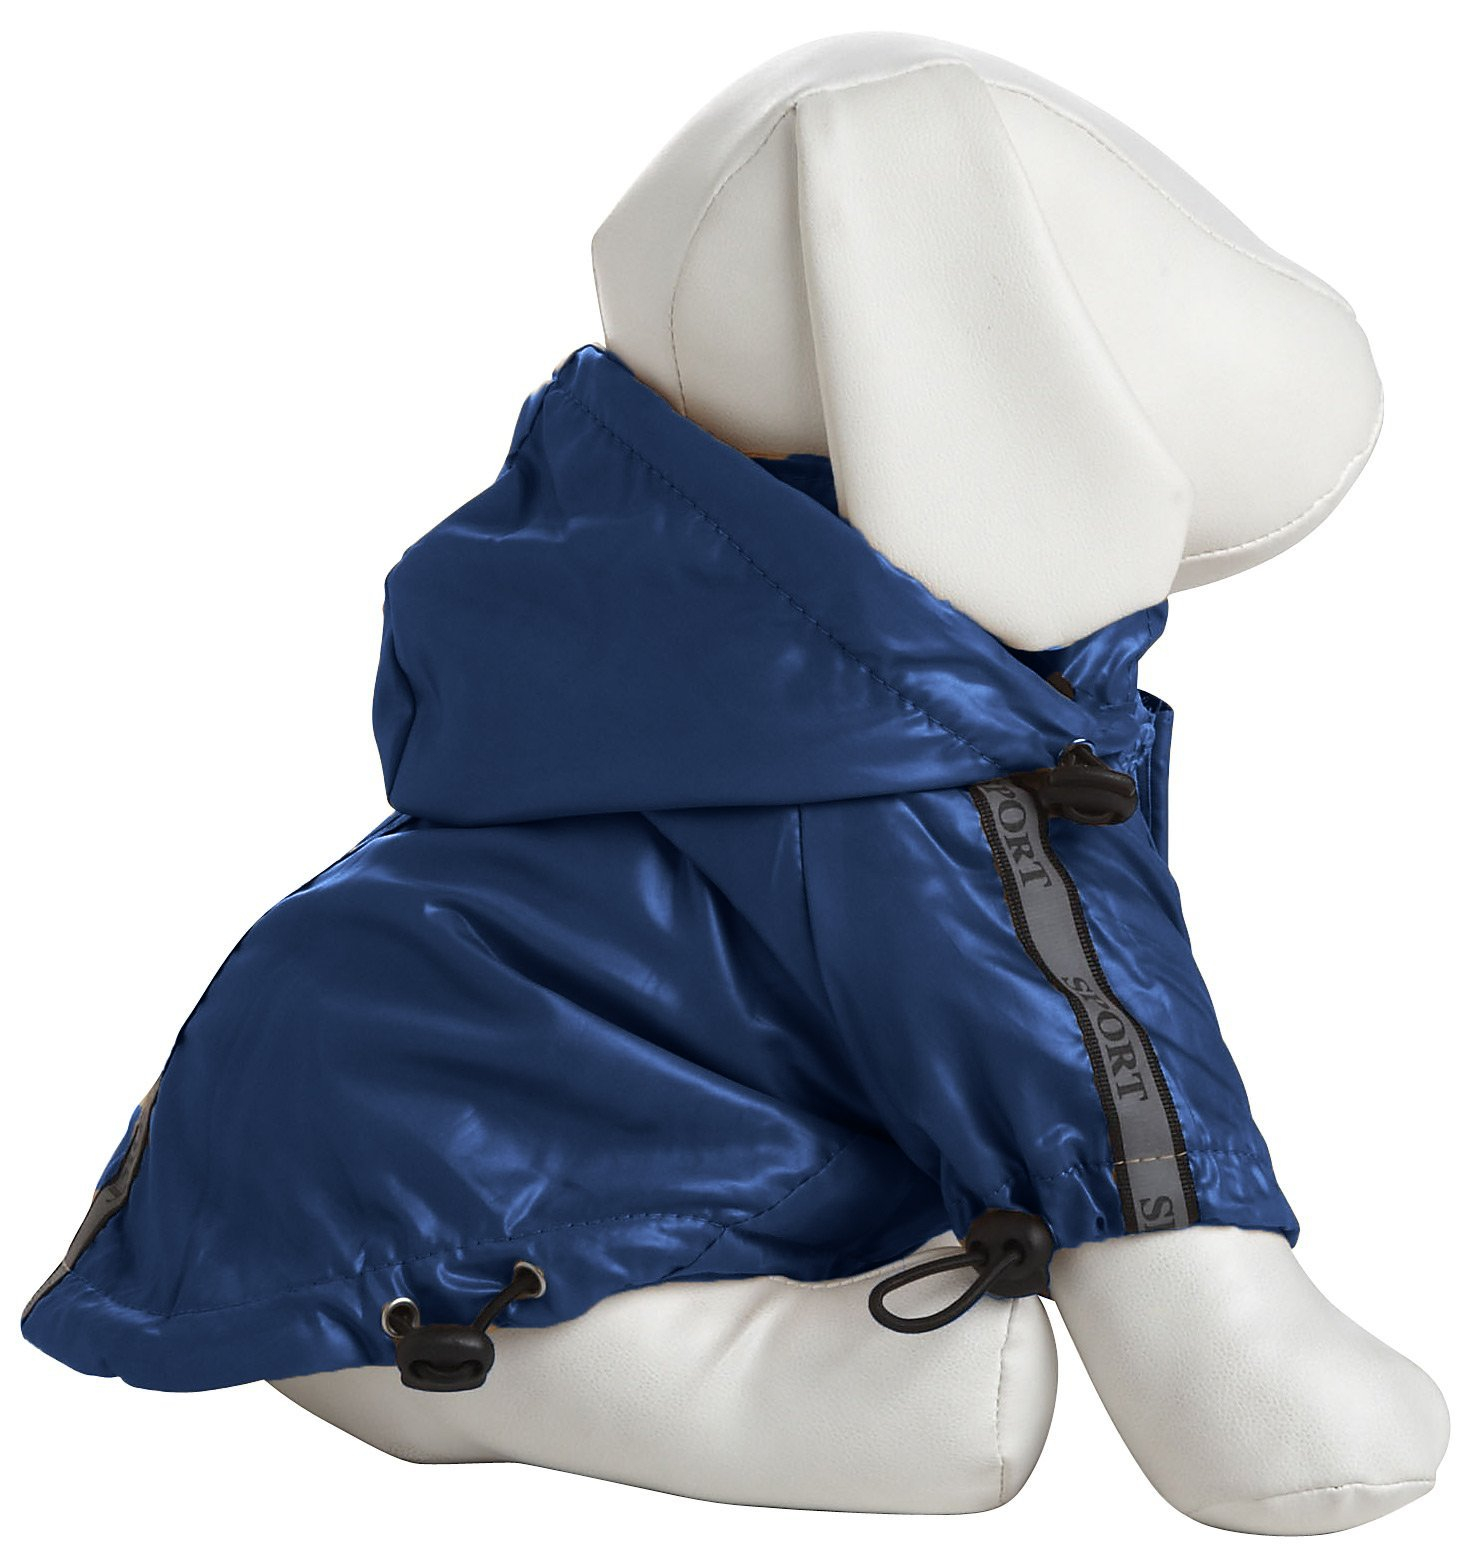 Pet Life Reflecta-Sport' Fashion Insulated Adjustable and Reflective Windproof Water-Resistant Pet Dog Coat Jacket Rainbreaker w/Removable Hood, Small, Dark Blue by Pet Life (Image #3)